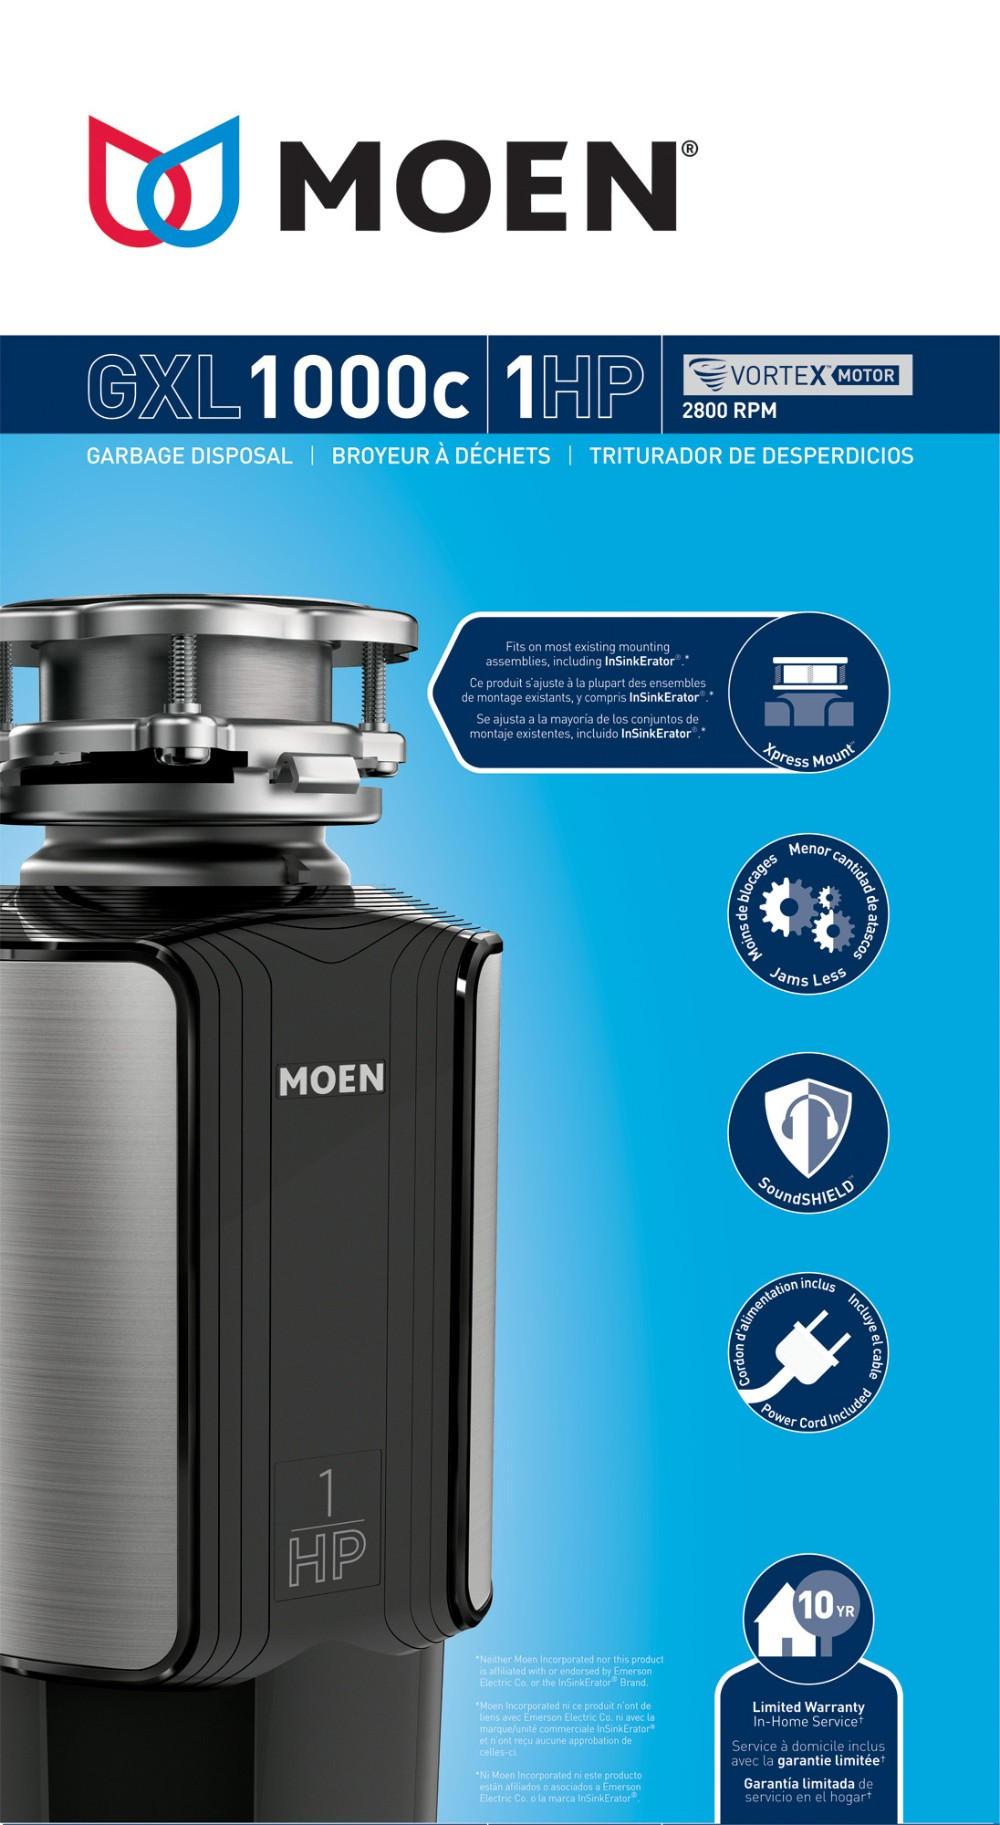 Model: GXL1000C | Moen GX Series 1 Horsepower Garbage Disposal